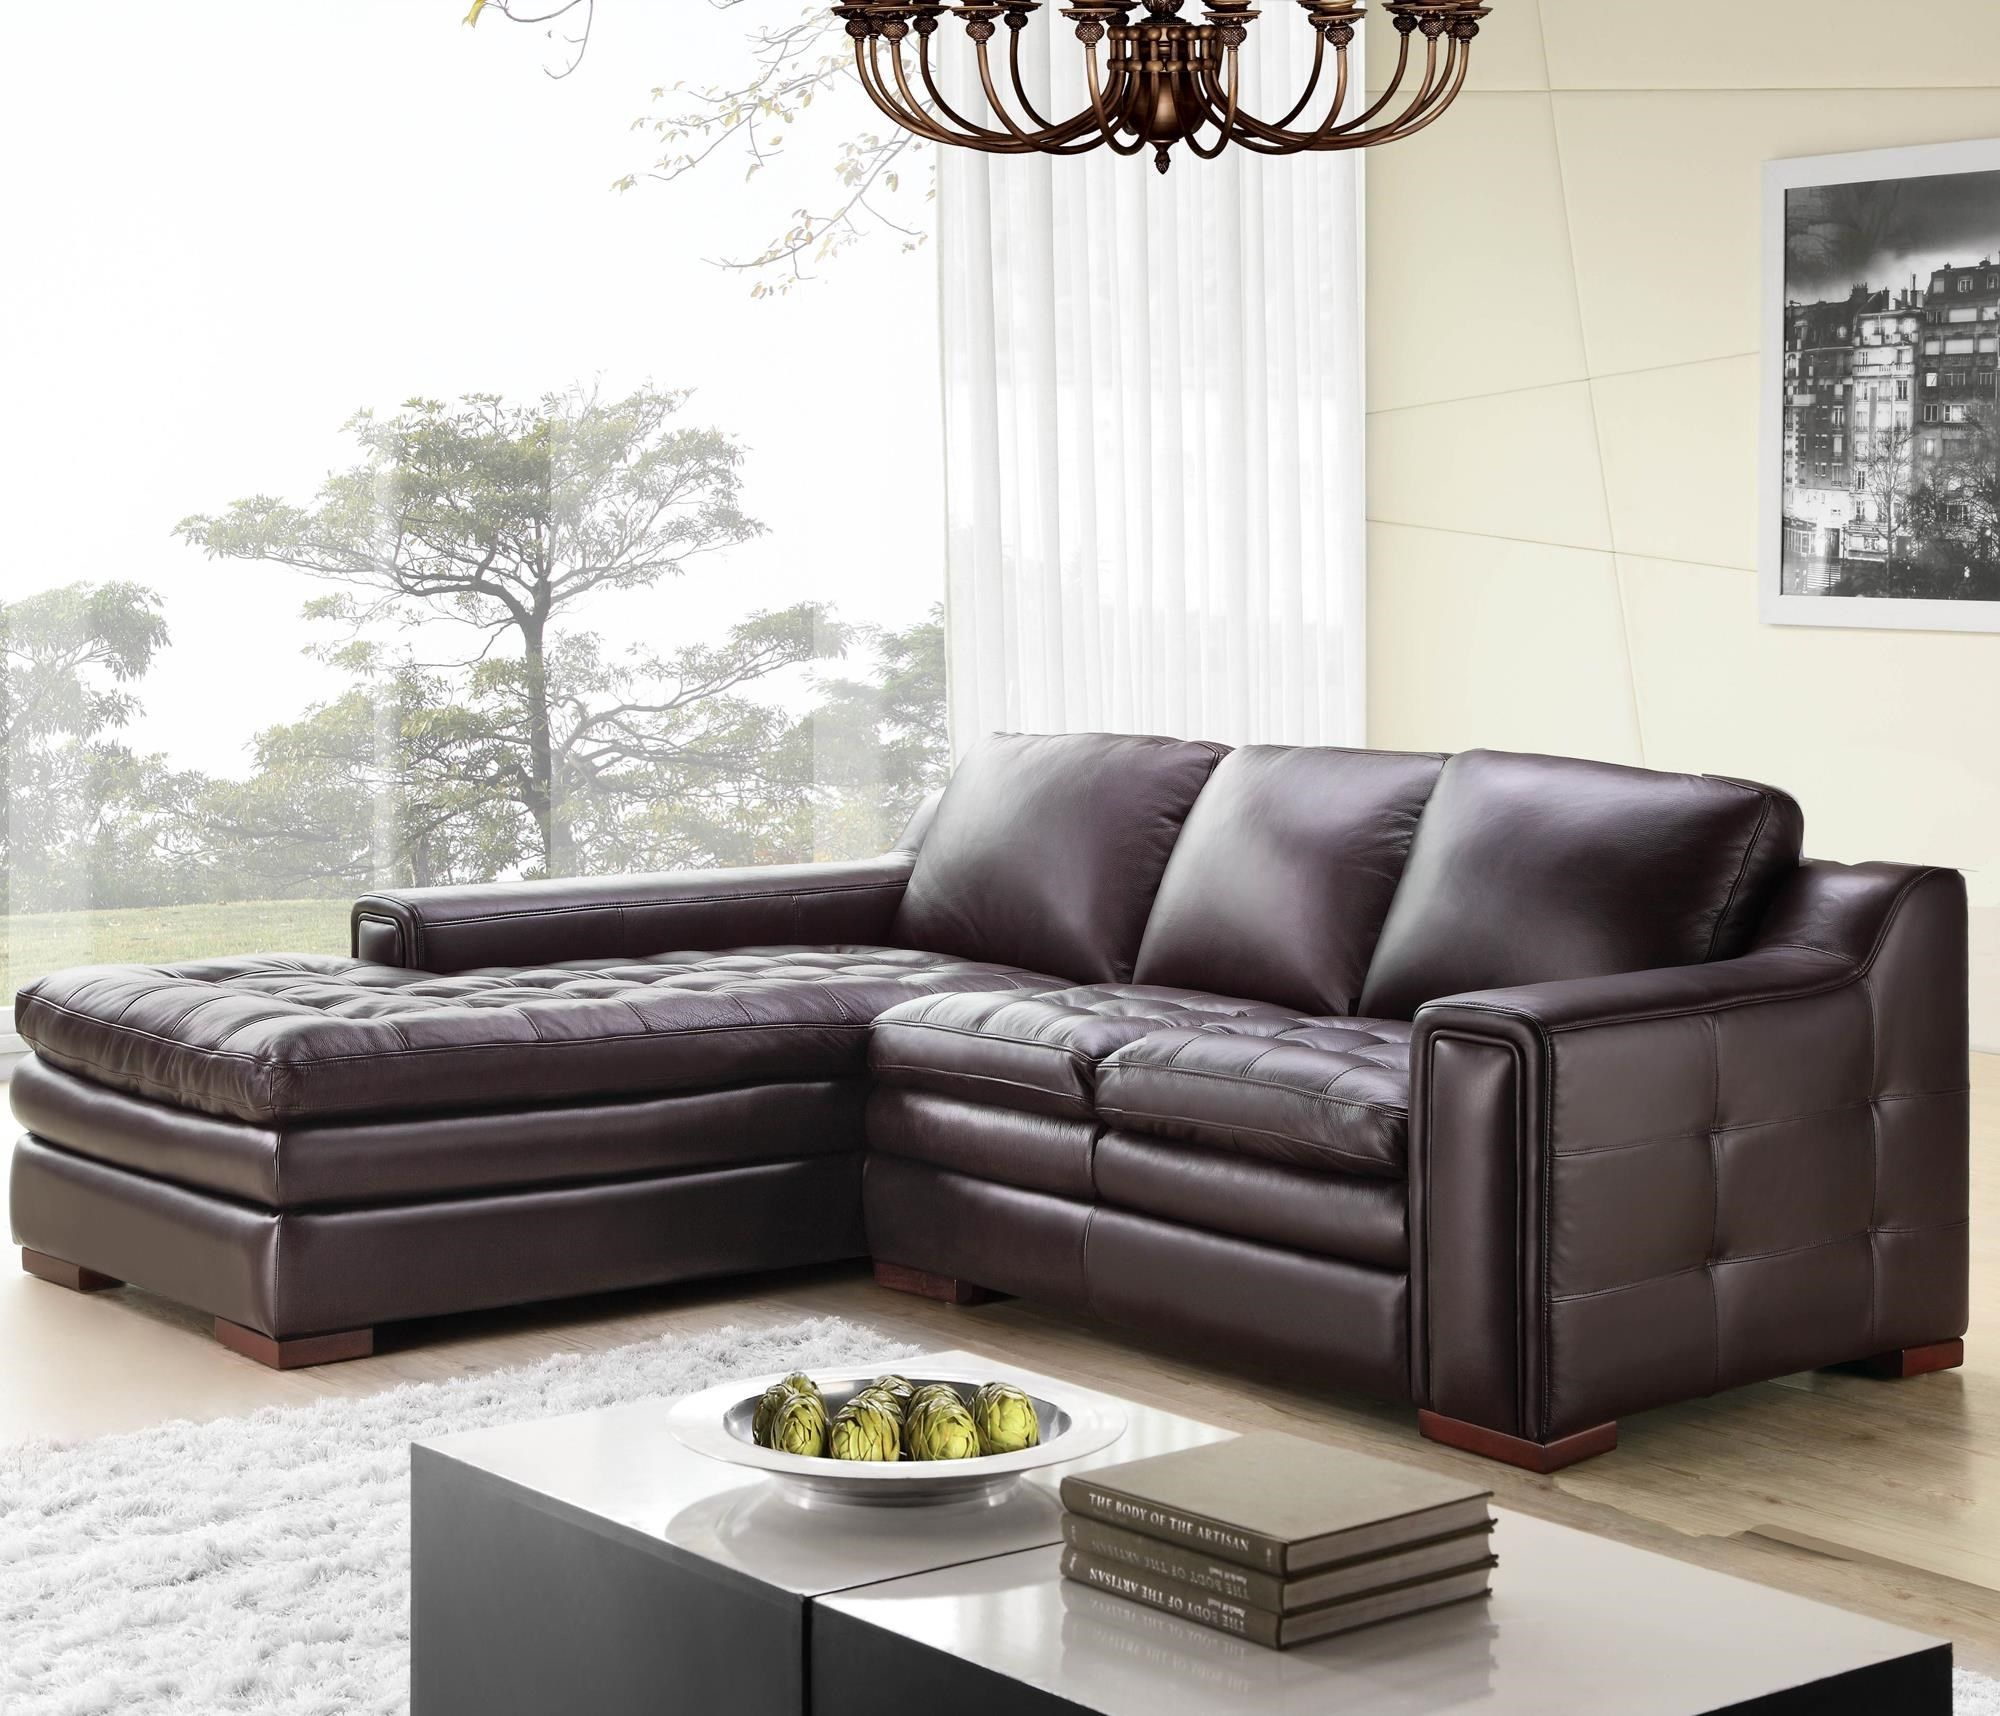 7491 2 pc vogue mountain sectional by futura leather modern furniture stores large furniture